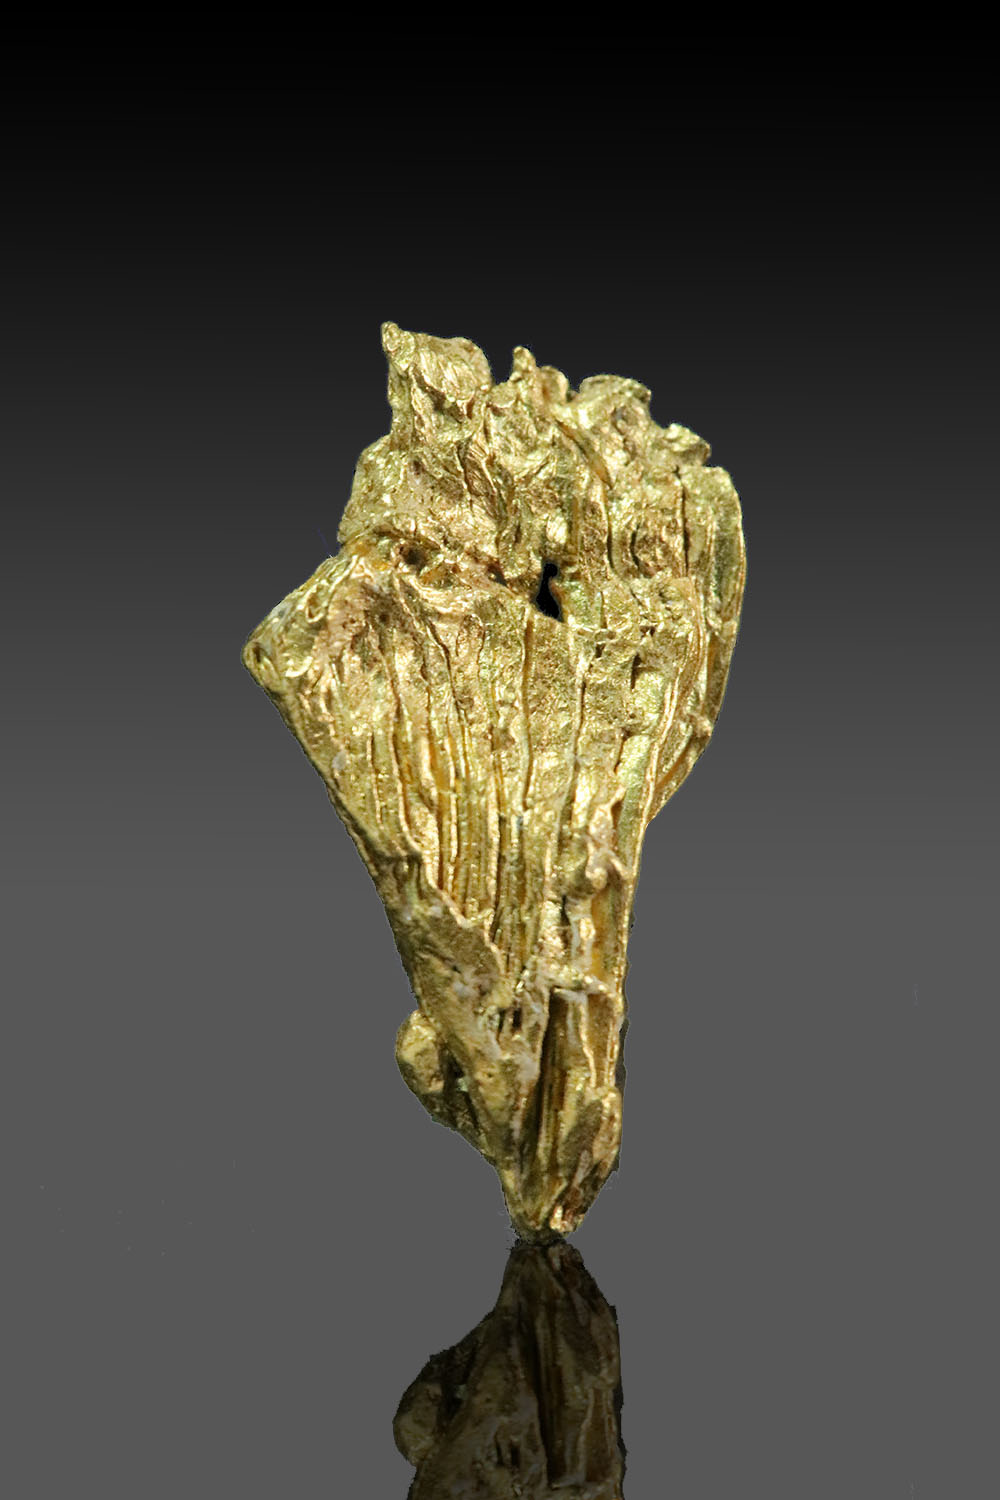 Tappered with Striations - Yukon Gold Nugget Specimen